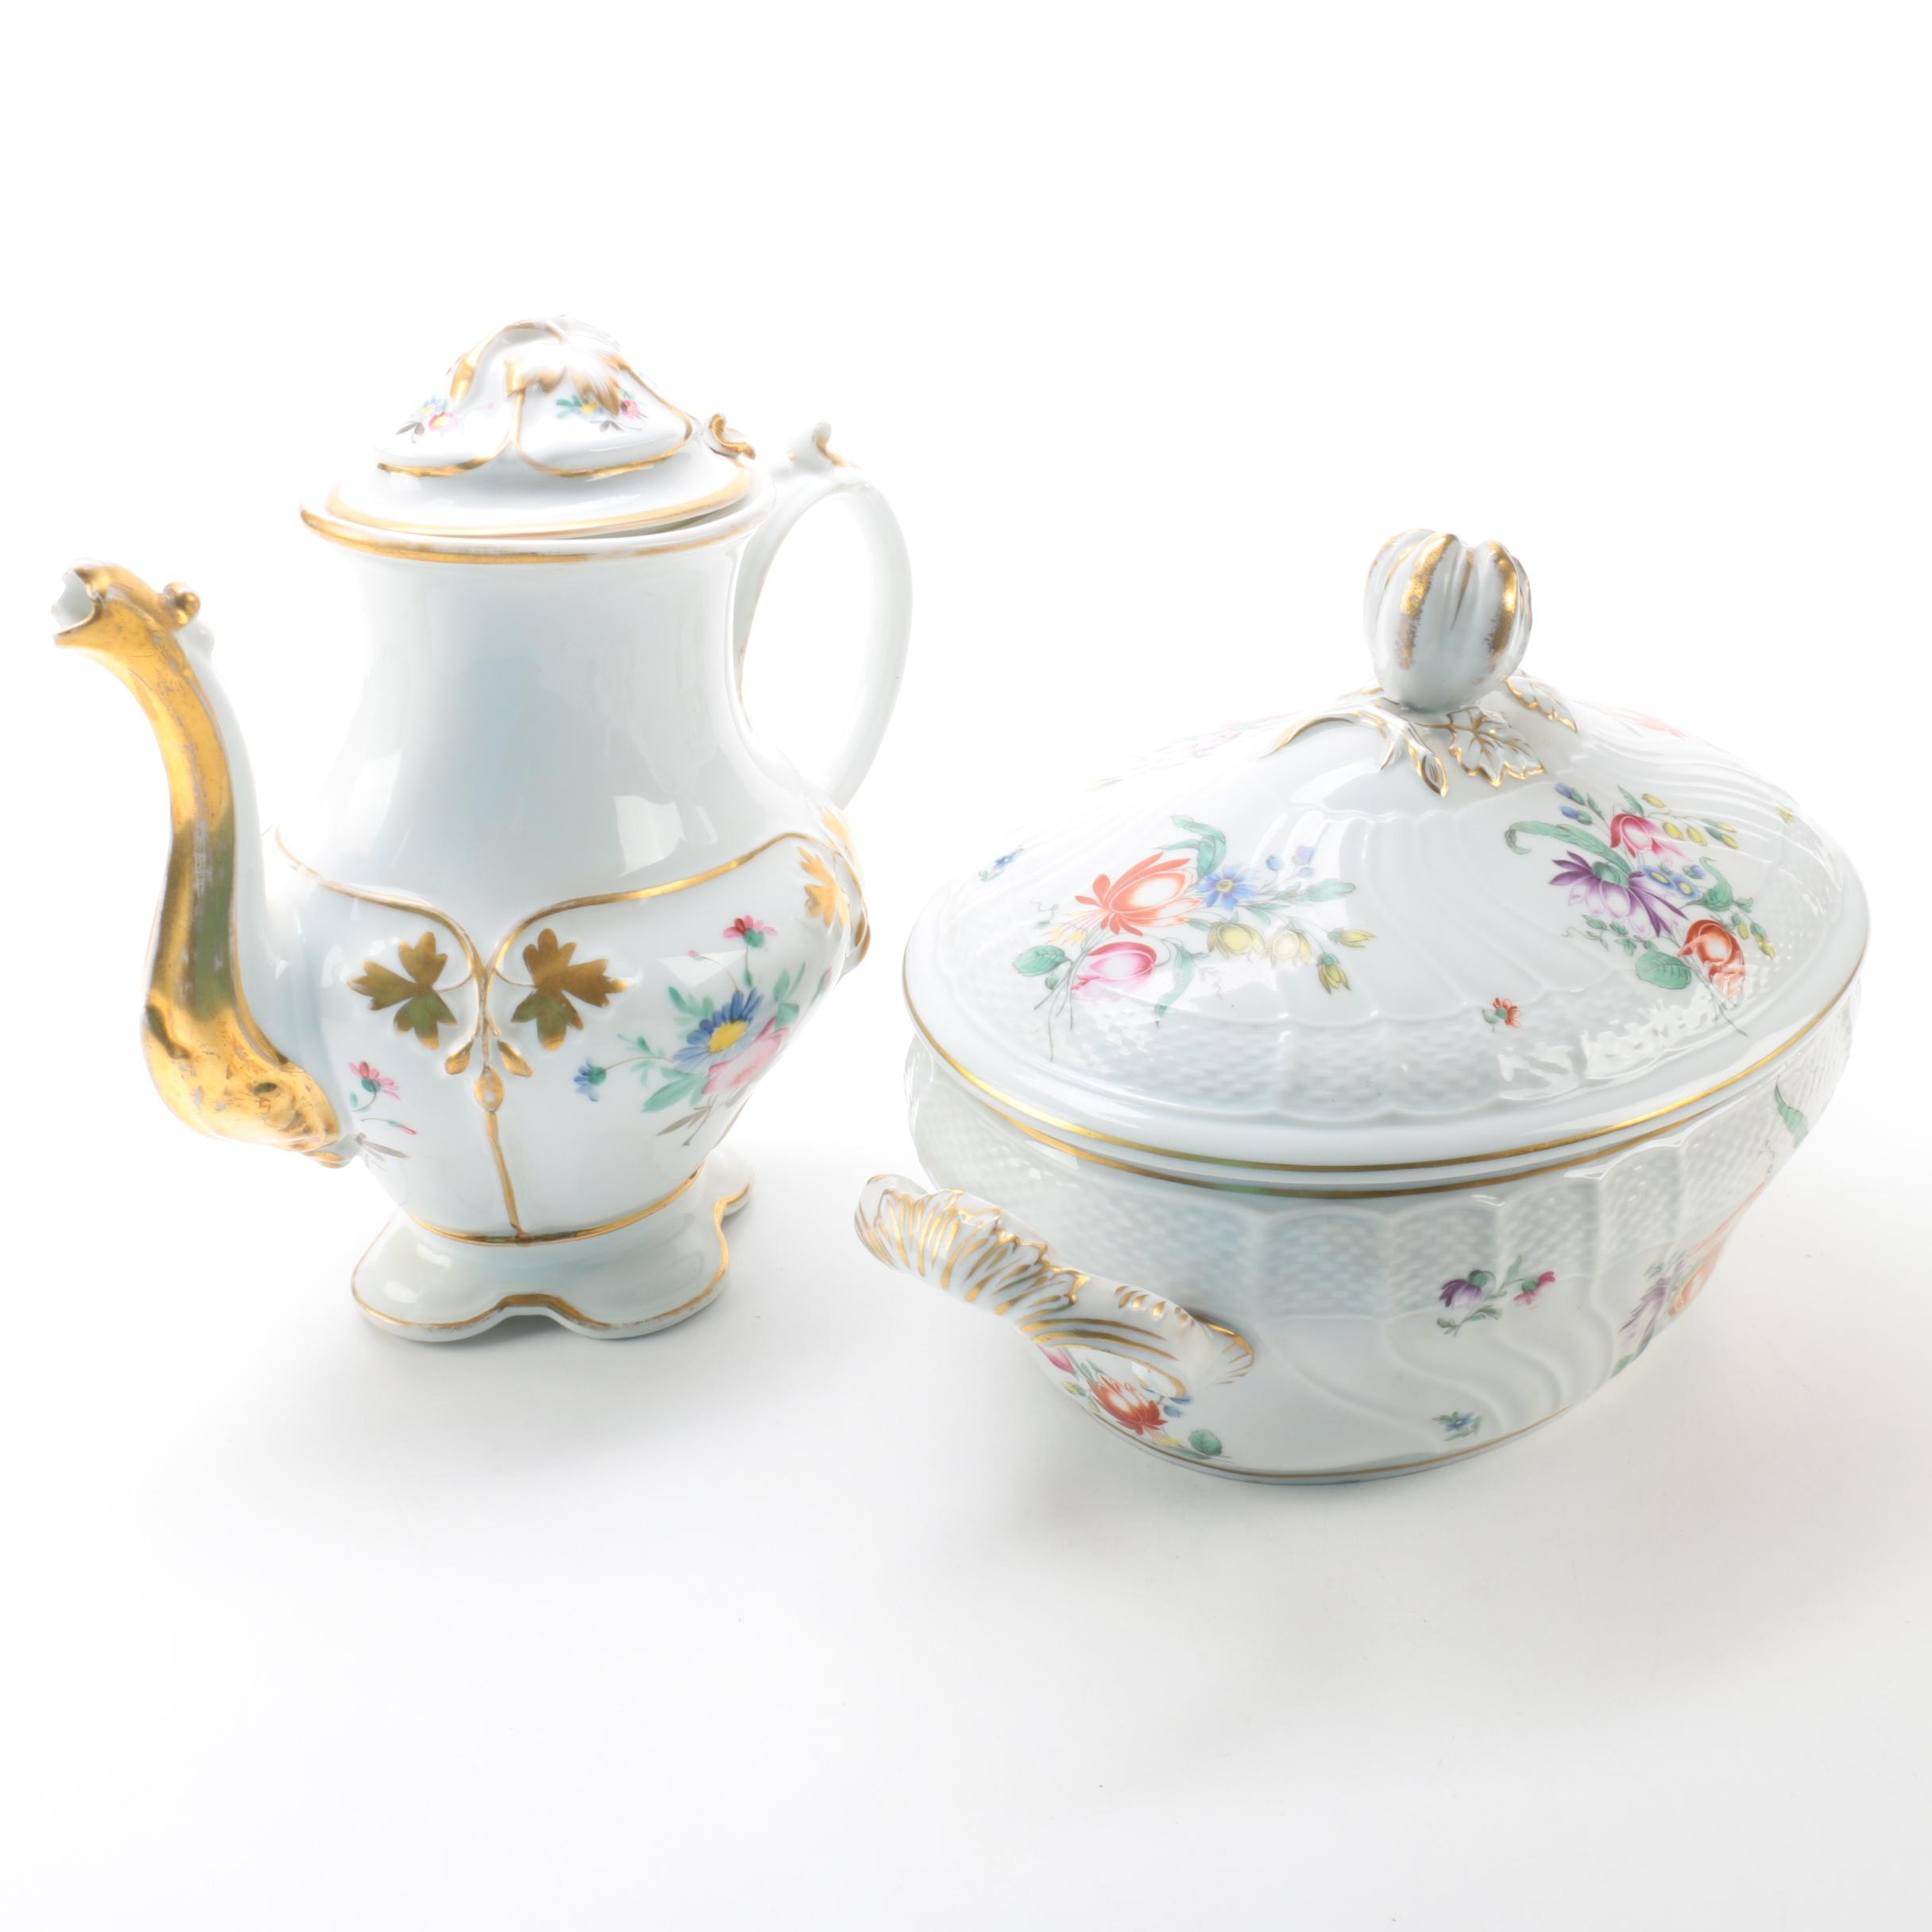 Vintage Floral Porcelain Pitcher and Richard Ginori Soup Tureen